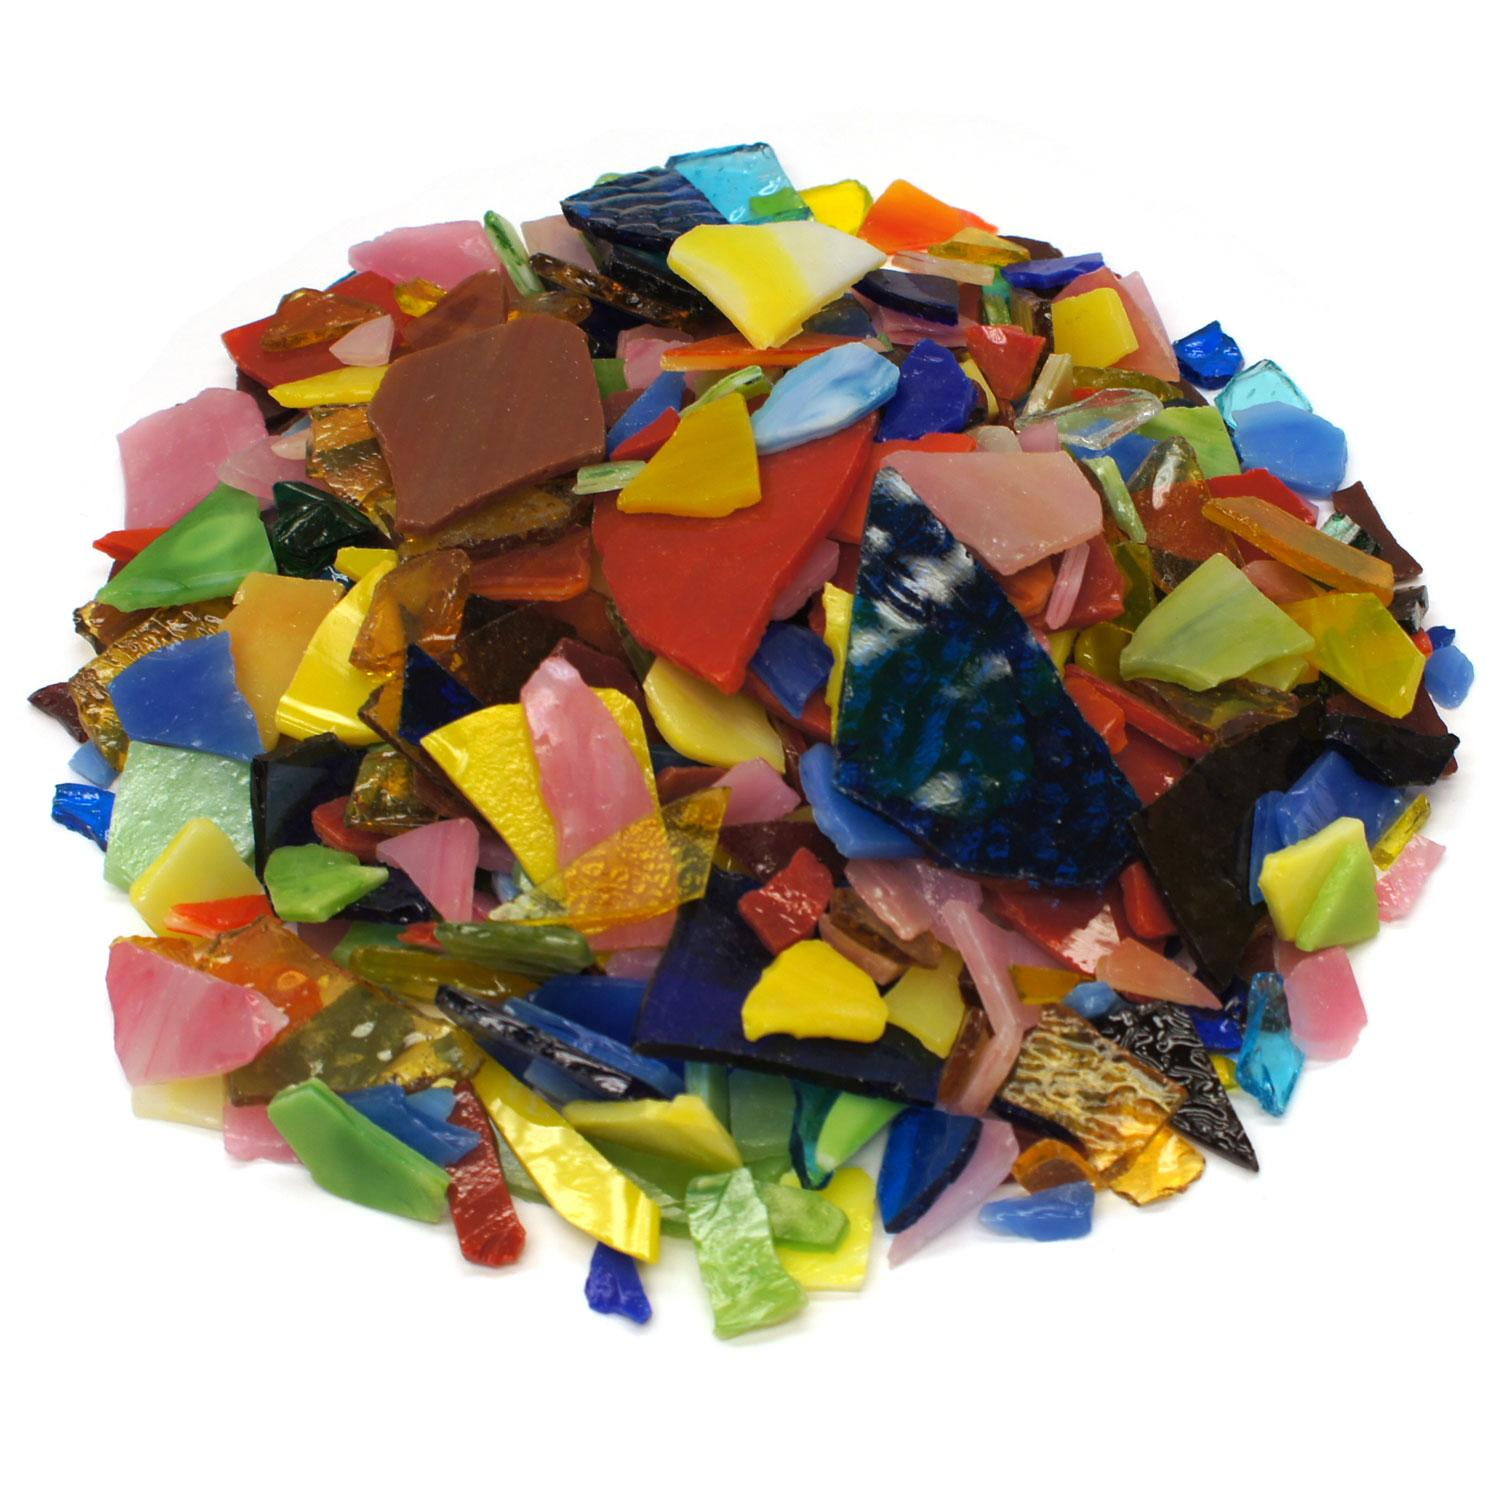 Bright Mix Mosaic Stained Glass Bits - 20 oz